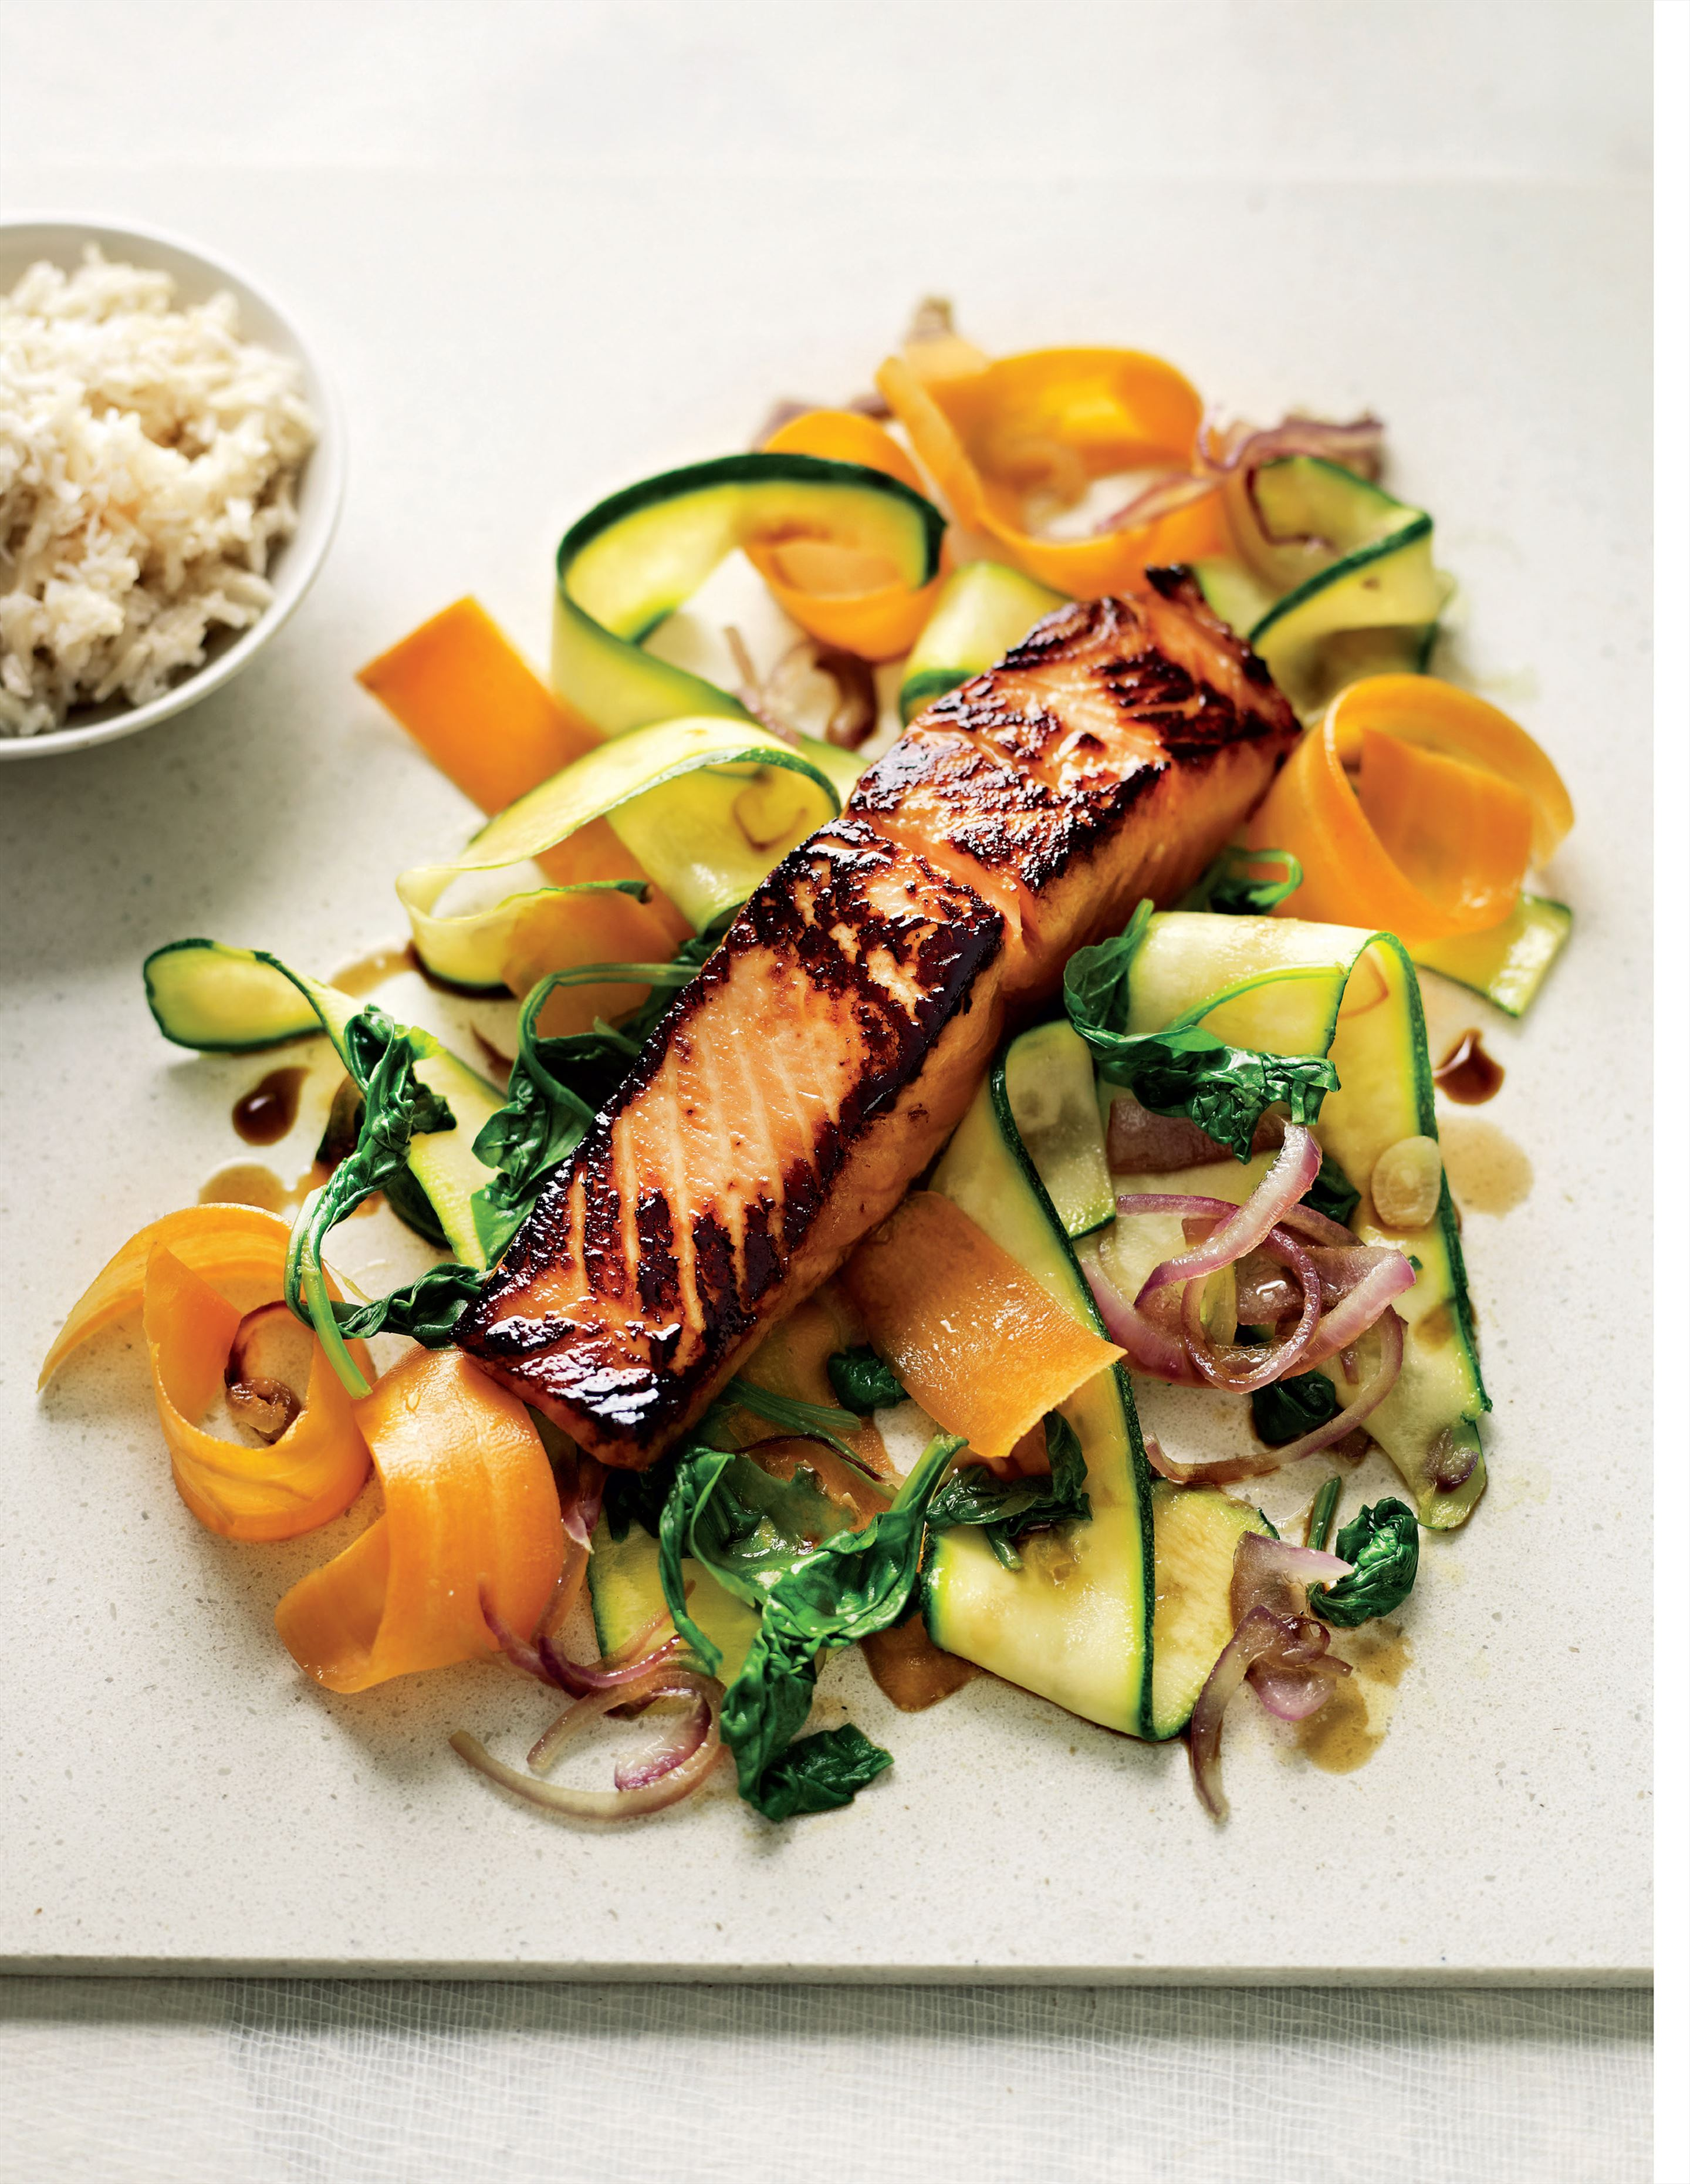 Sesame soy salmon and vegetables with coconut rice